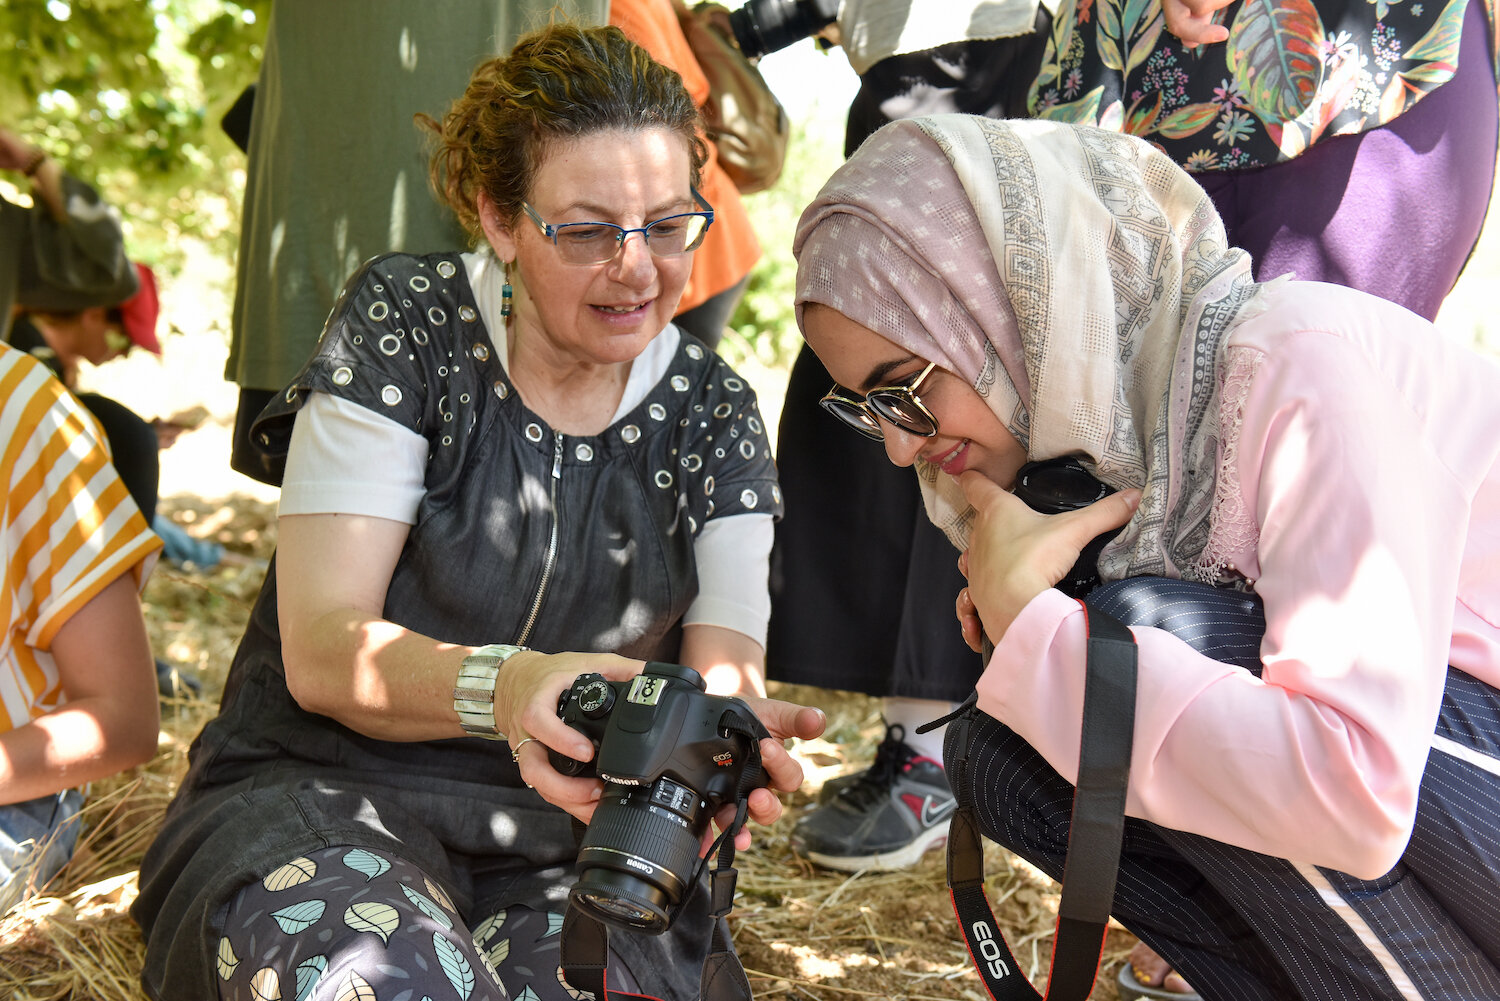 saskia-keeley-photography-humanitarian-photojournalism-documentarian-israel-and-palestine-peace-beyond-sides-towards-reconciliation-roots-non-violence-workshops-DSC_3769.jpg